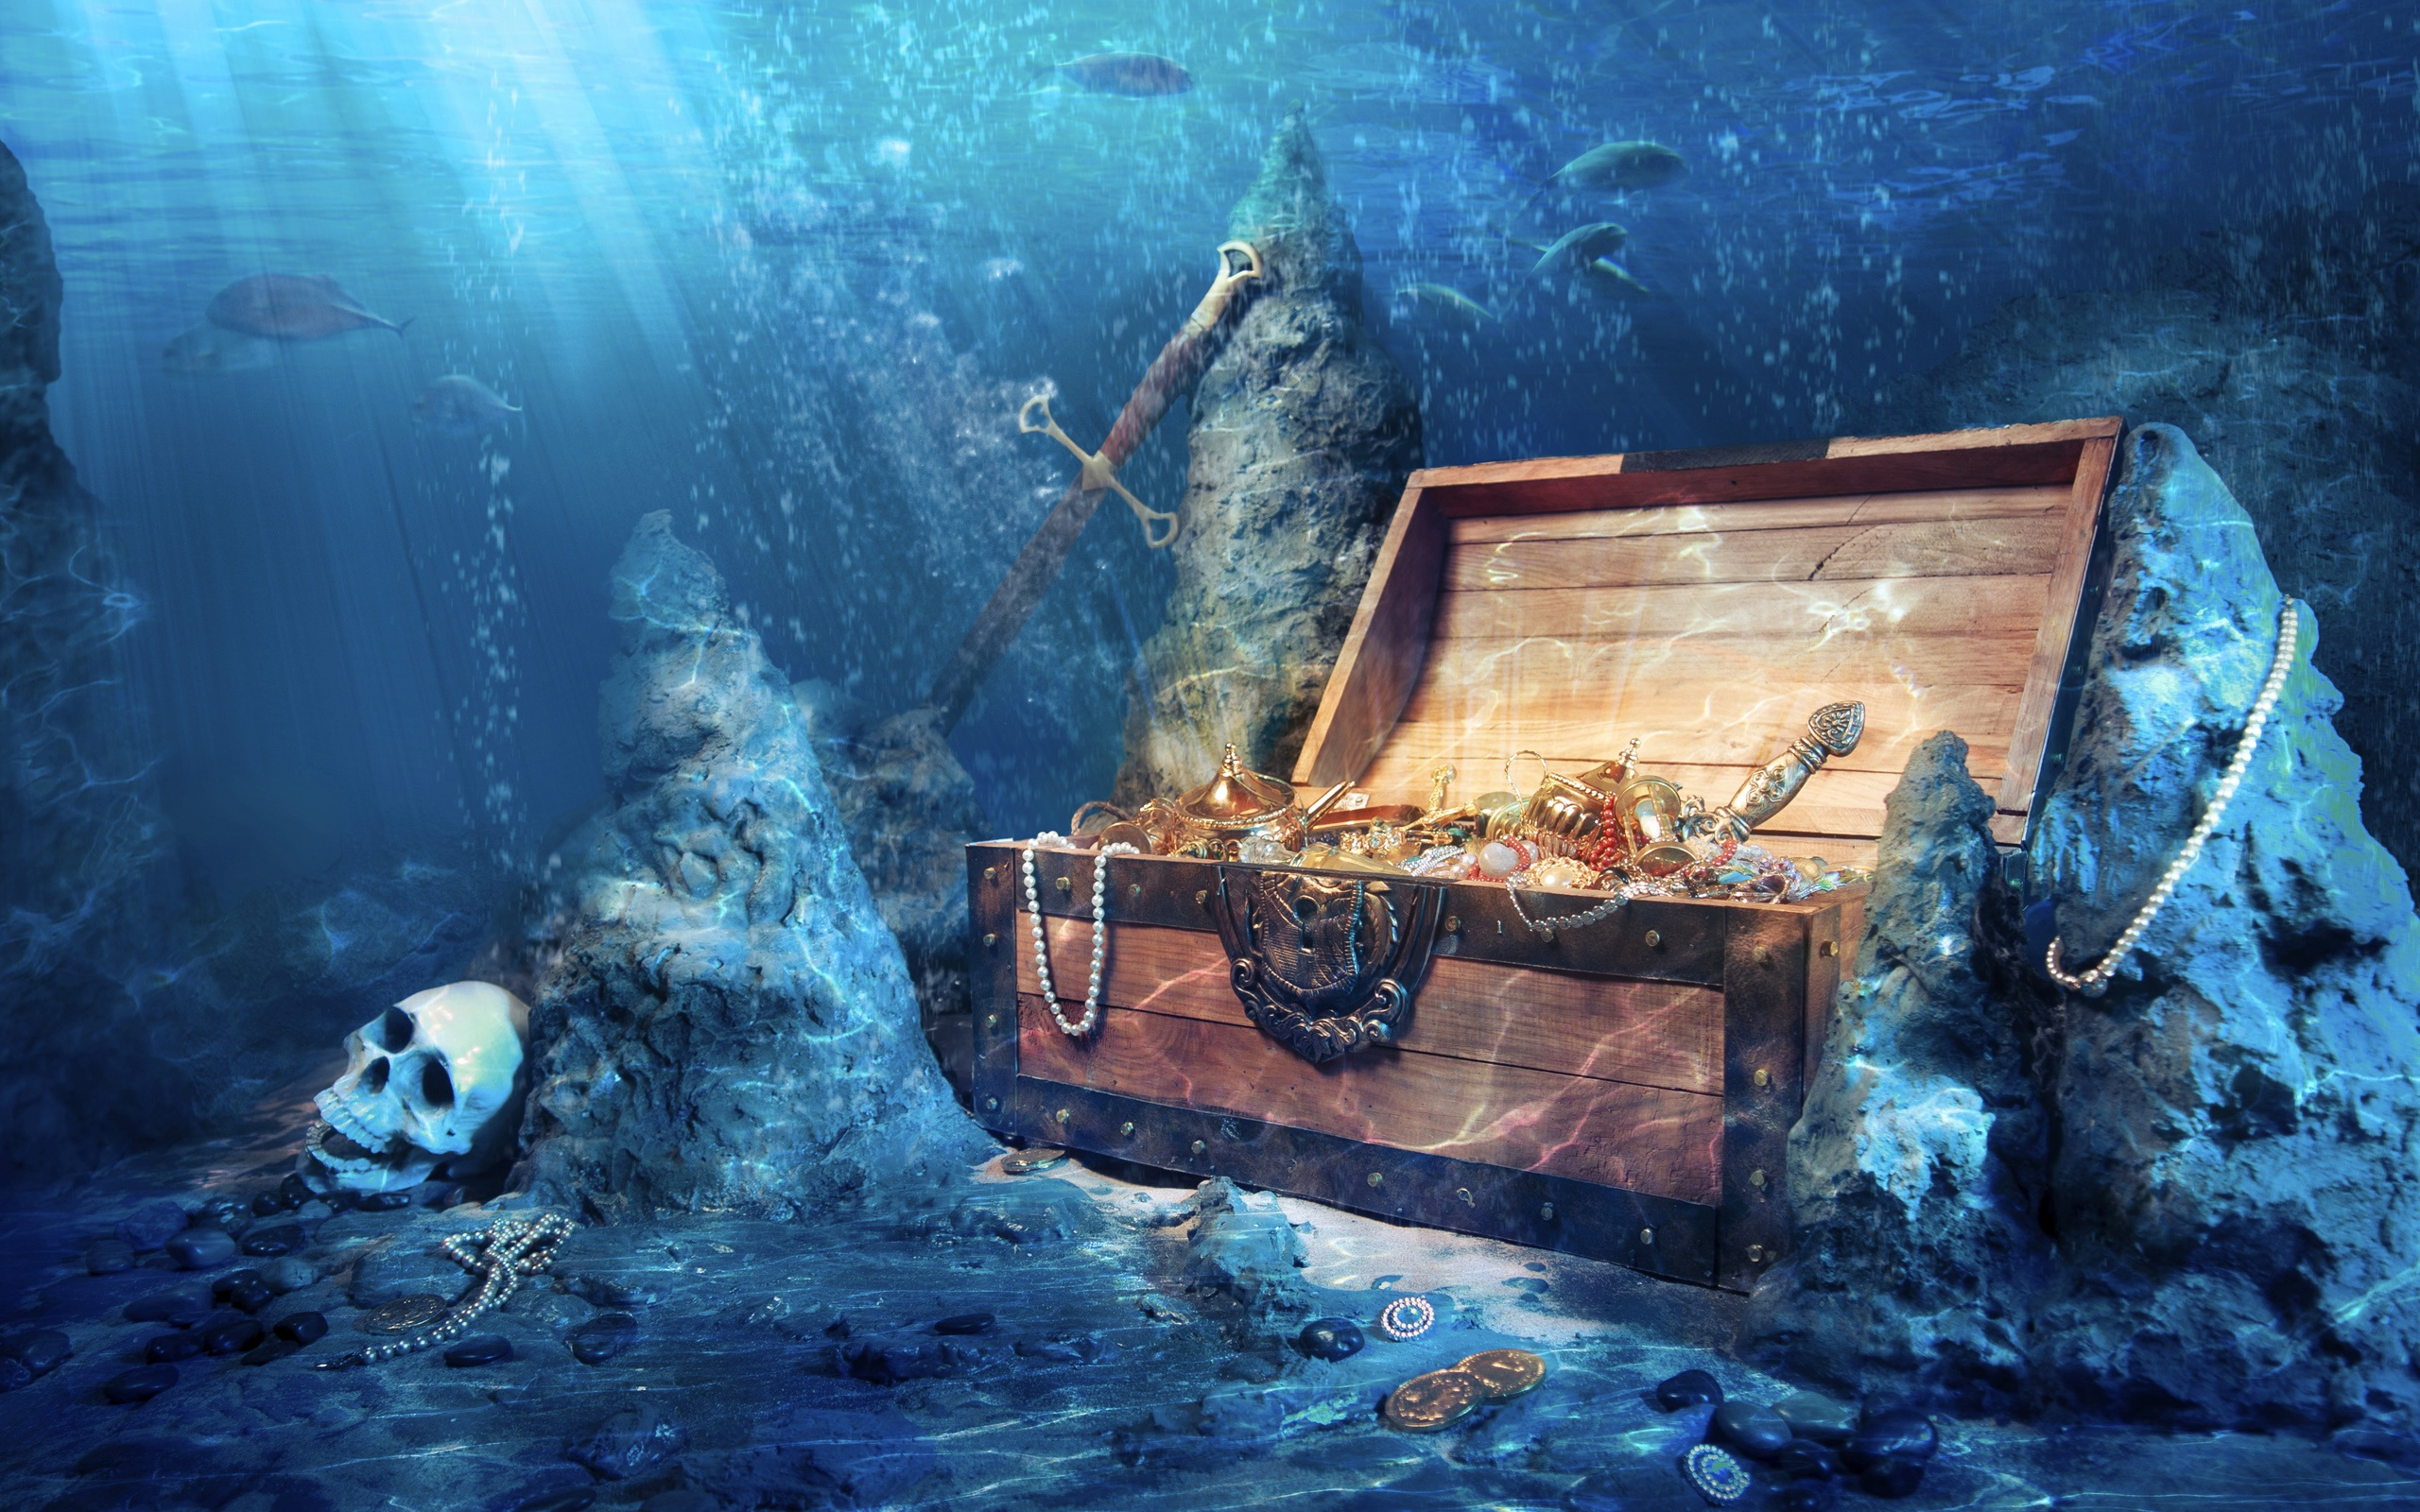 Download This Wallpaper Treasure Chest Under The Sea 1120875